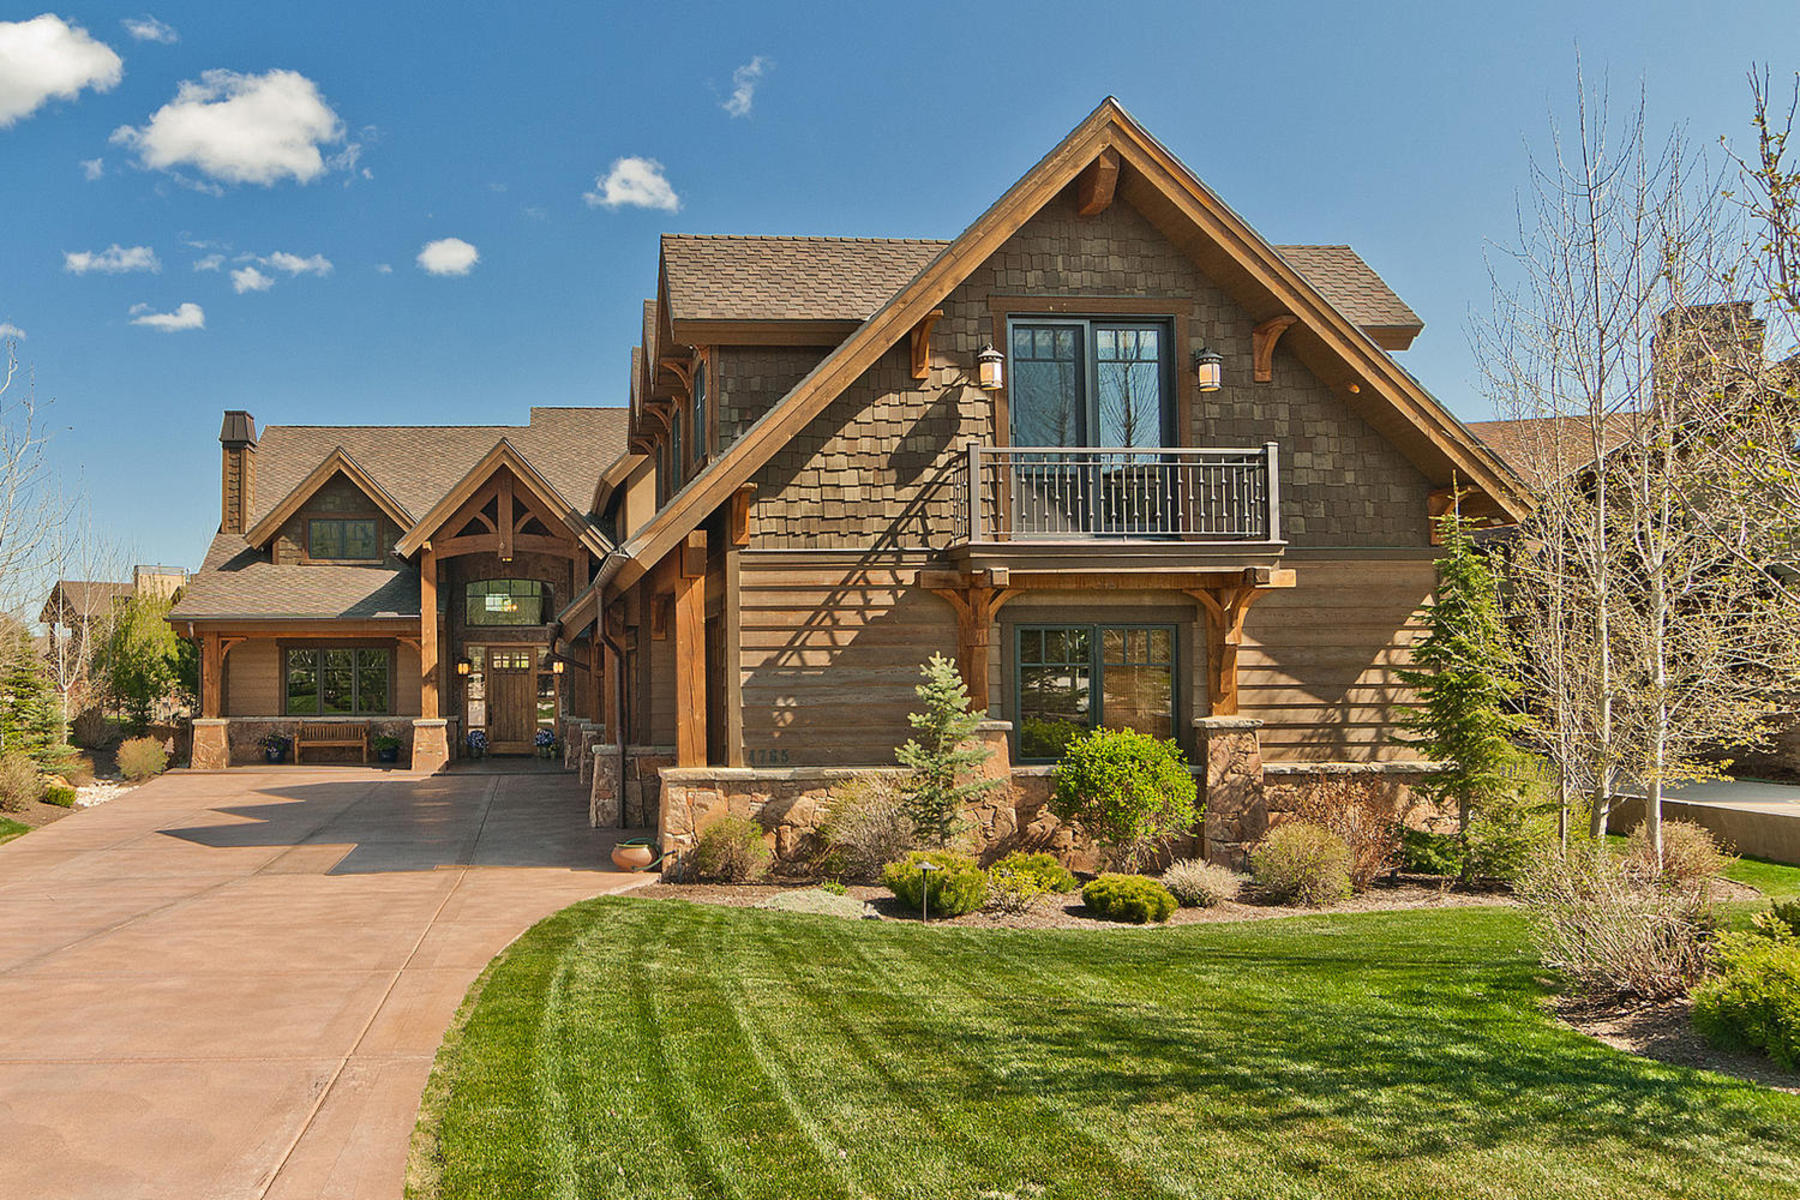 Property For Sale at Stunning Willow Creek Home